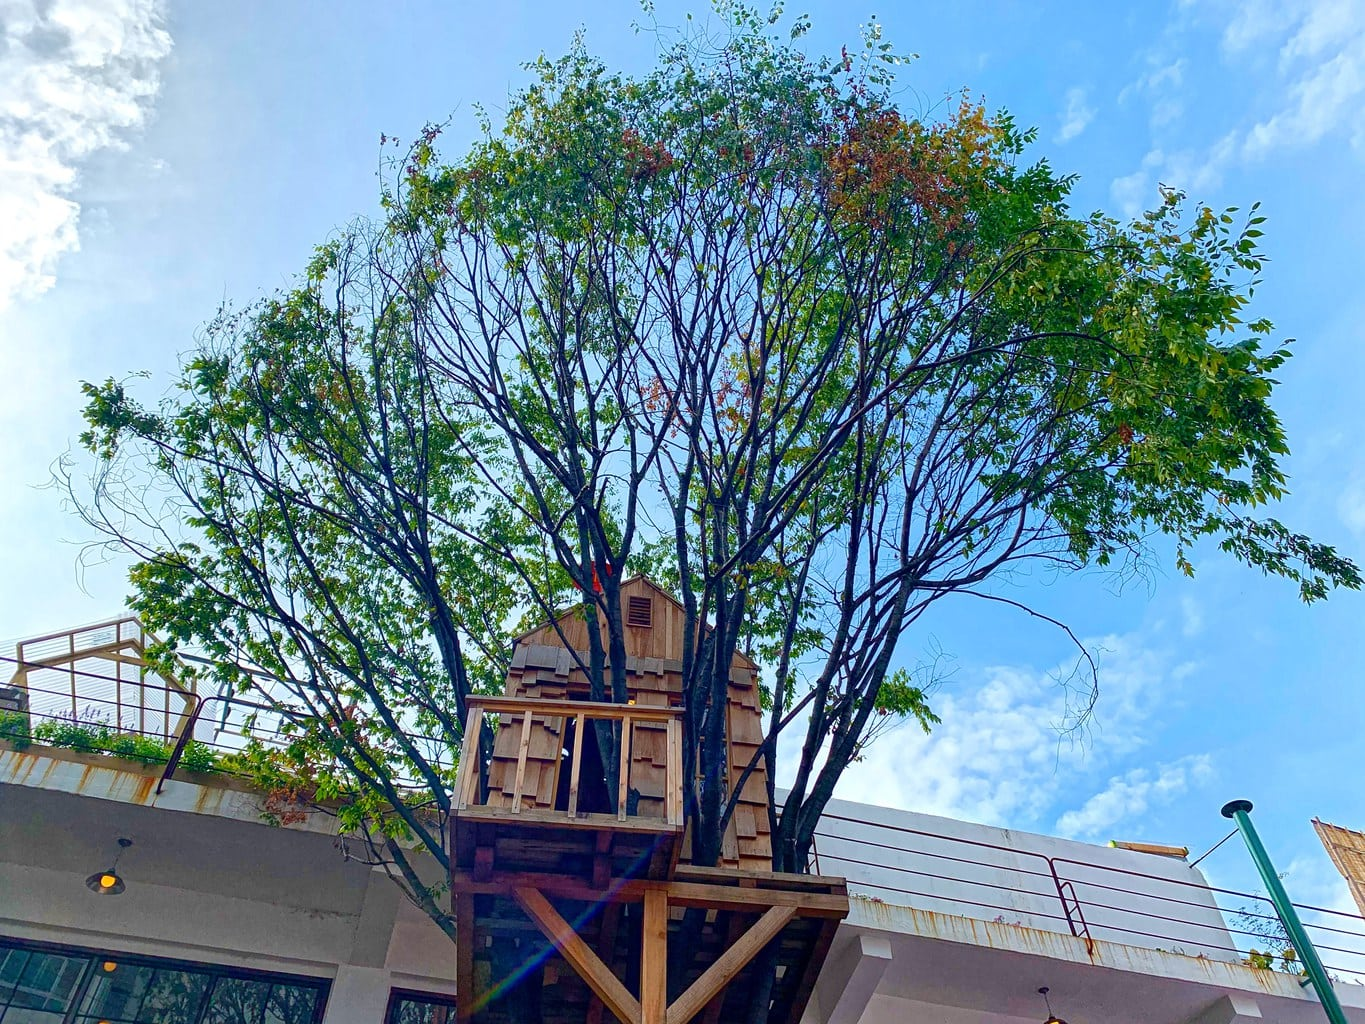 Treehouse at Grandpa Factory